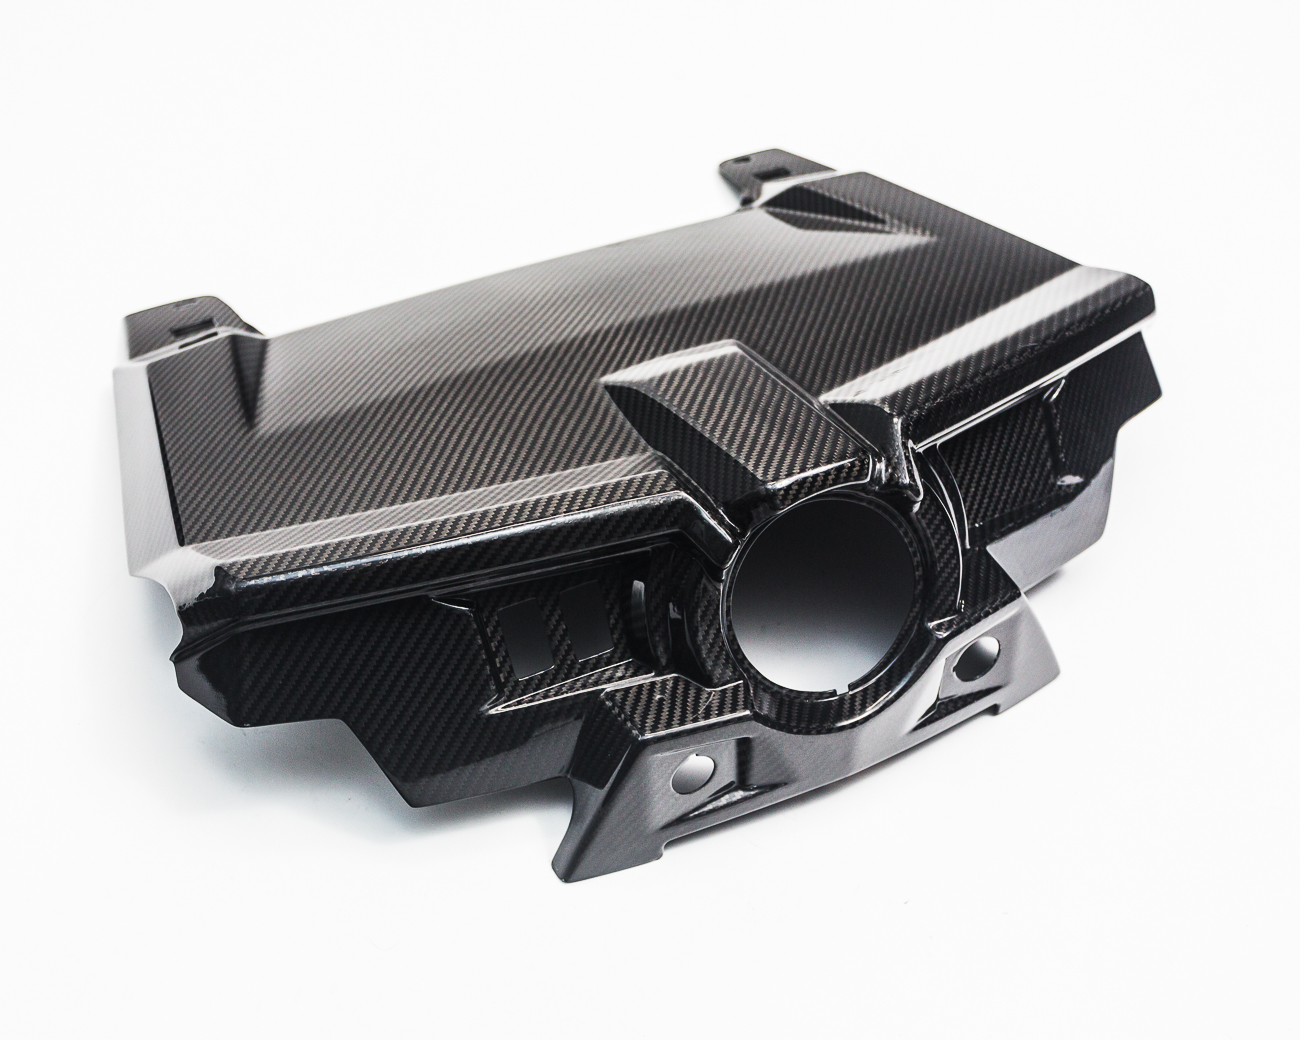 Agency Power Carbon Fiber Dash Polaris RZR XP 1000 | Turbo 14-16 - AP-RZR-605